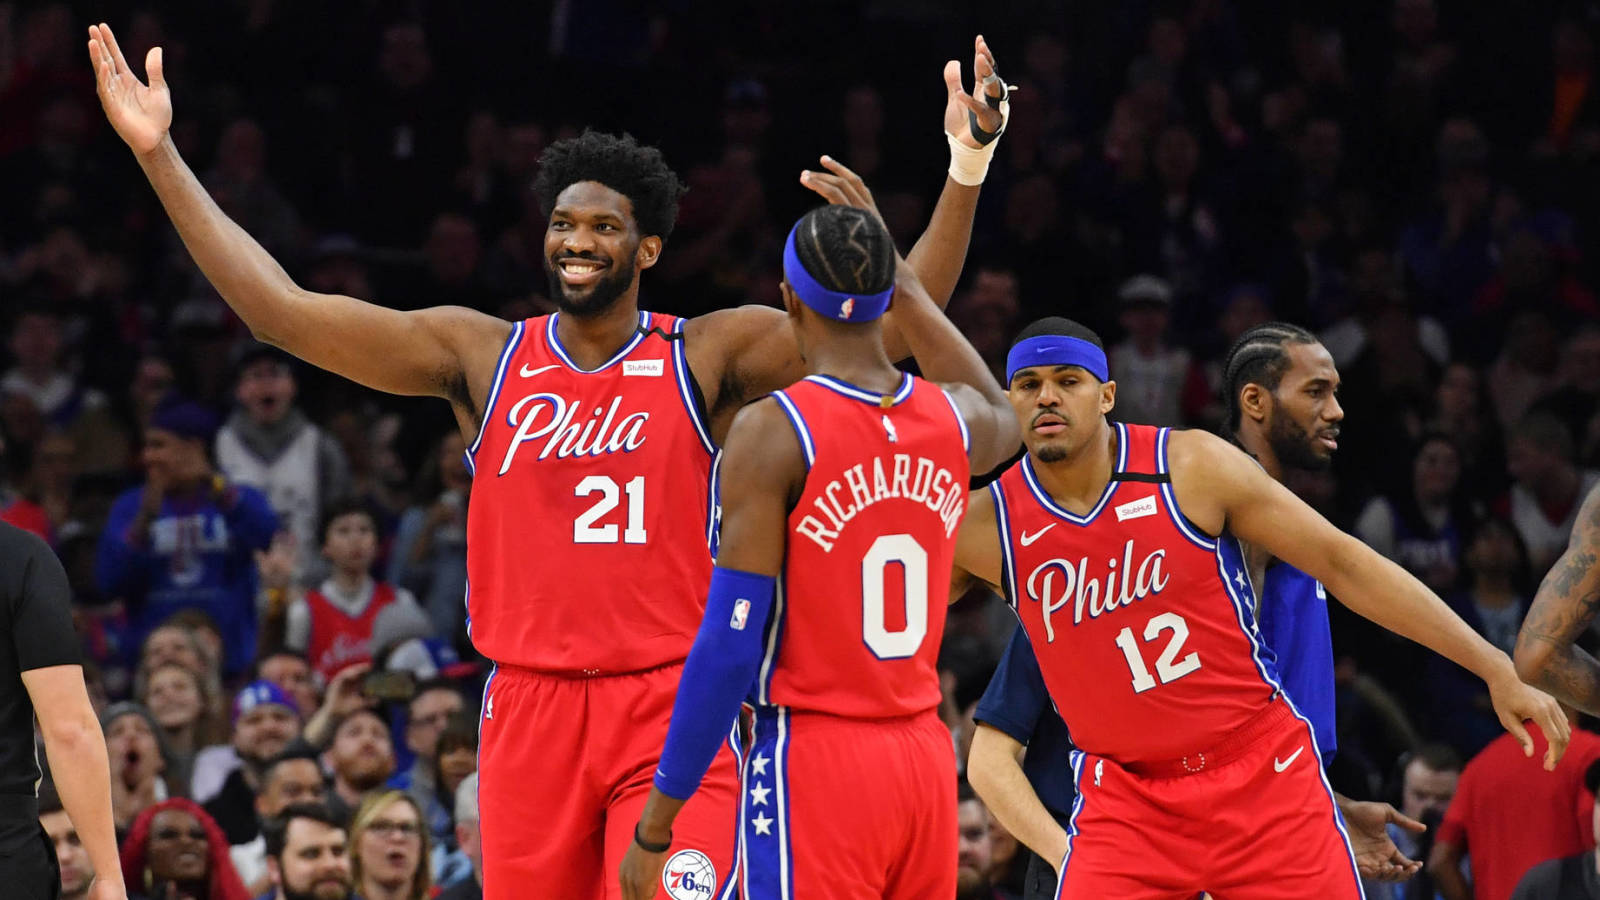 Joel Embiid 'cool' with 76ers fans booing him: 'It's all love'